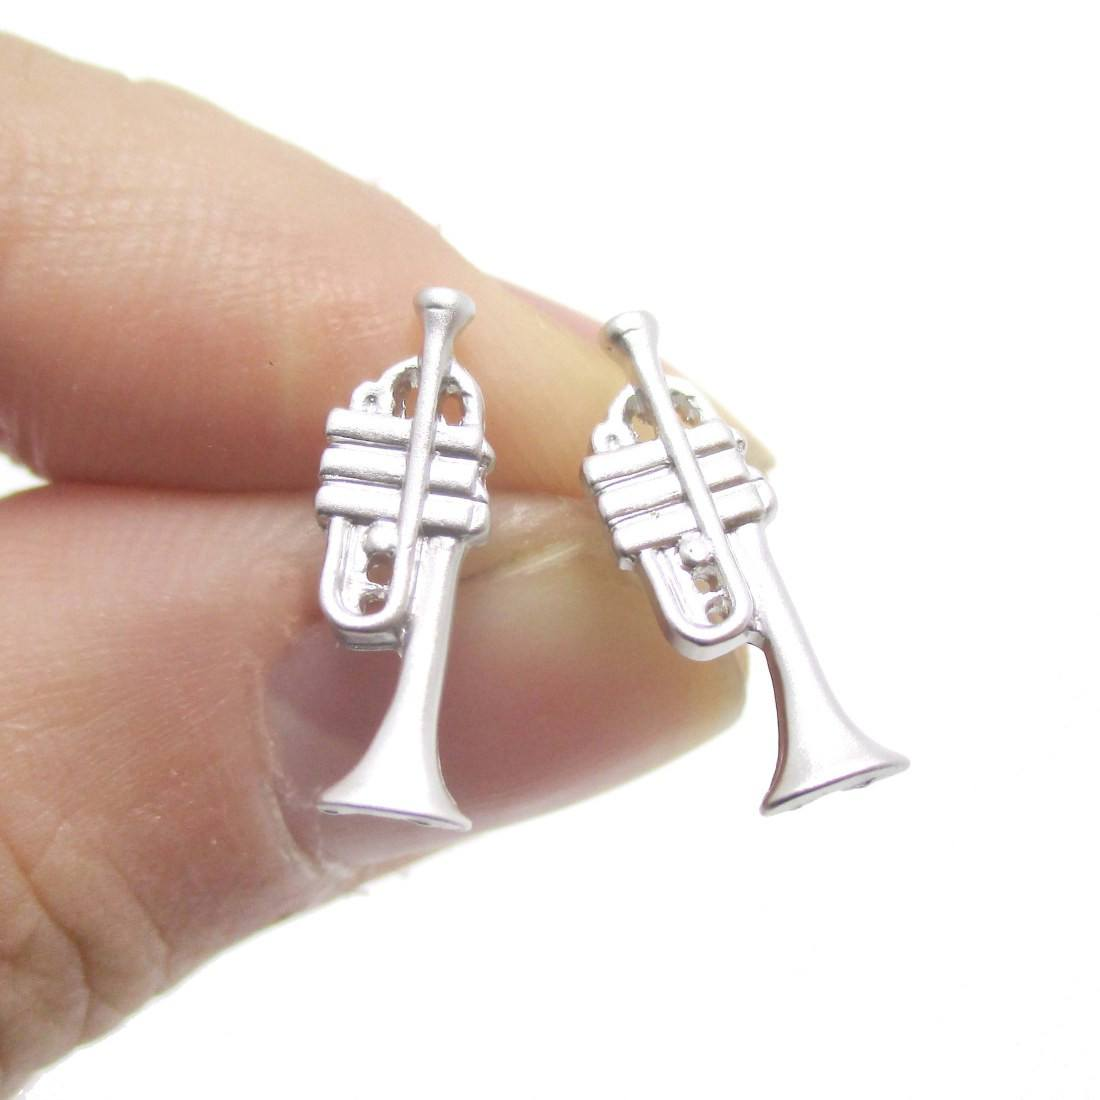 3D Trumpet Shaped Music Themed Stud Earrings in Silver